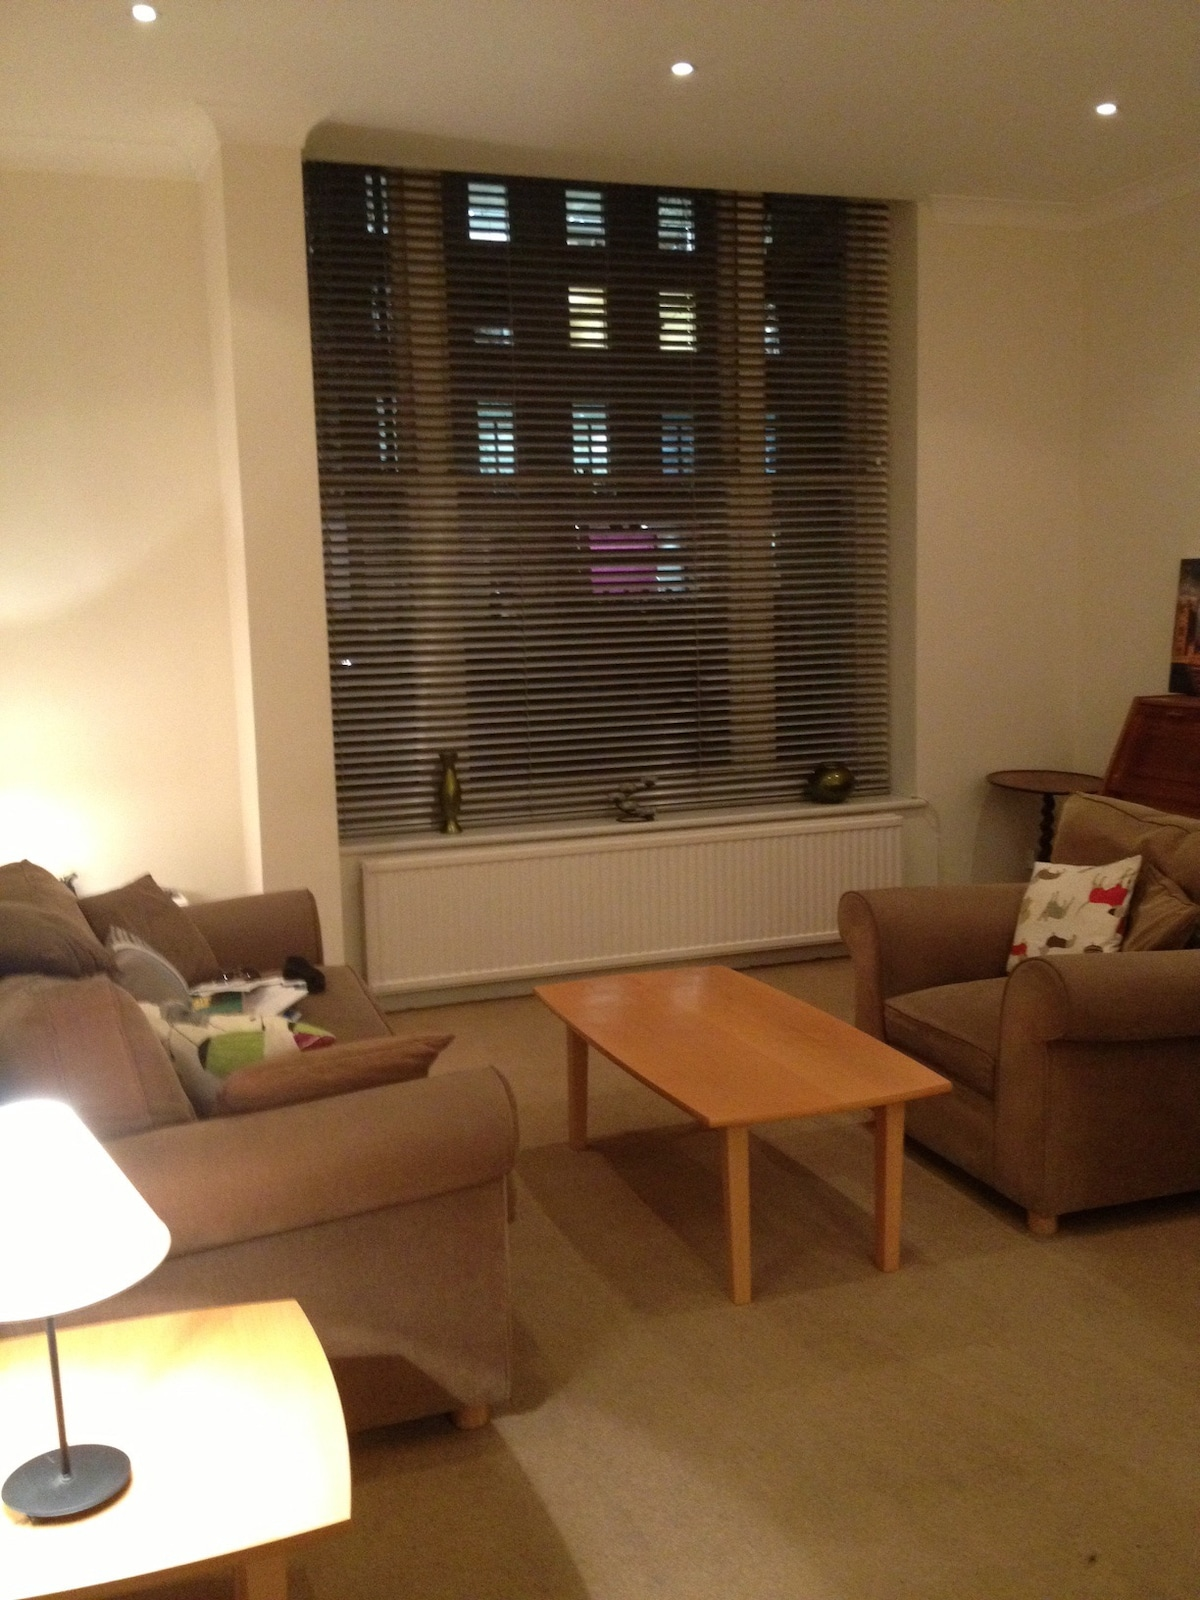 The living room is spacious with a great view of the London city life! It is easy to close the blinds for more privacy!